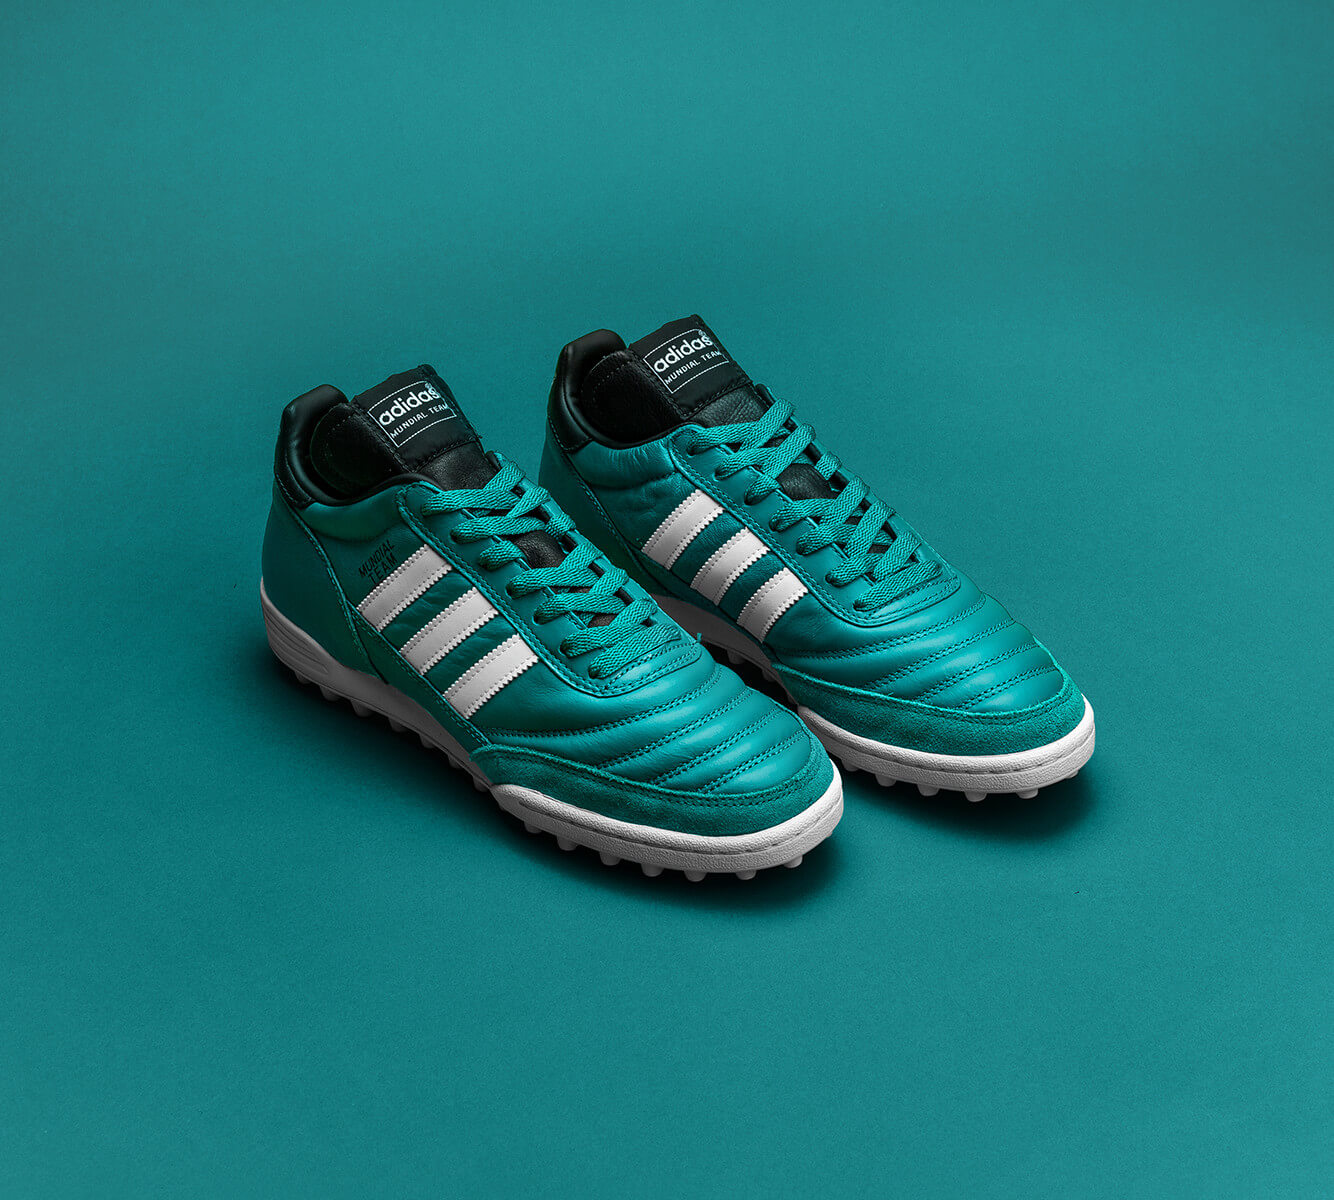 Get your pair of adidas Tango street shoes in EQT Green now 80462c801